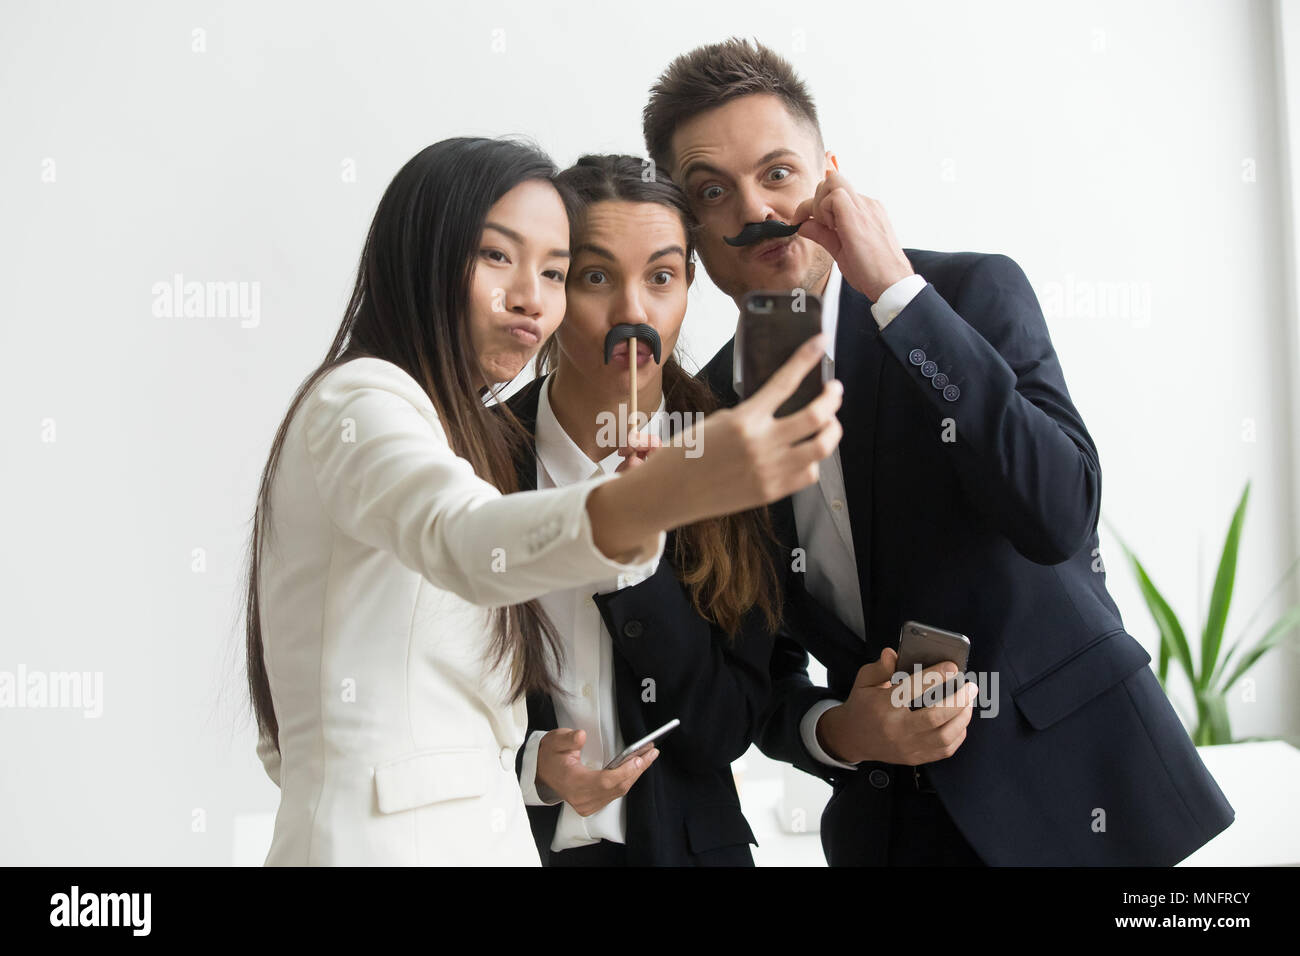 Coworkers making picture with mustache accessory - Stock Image